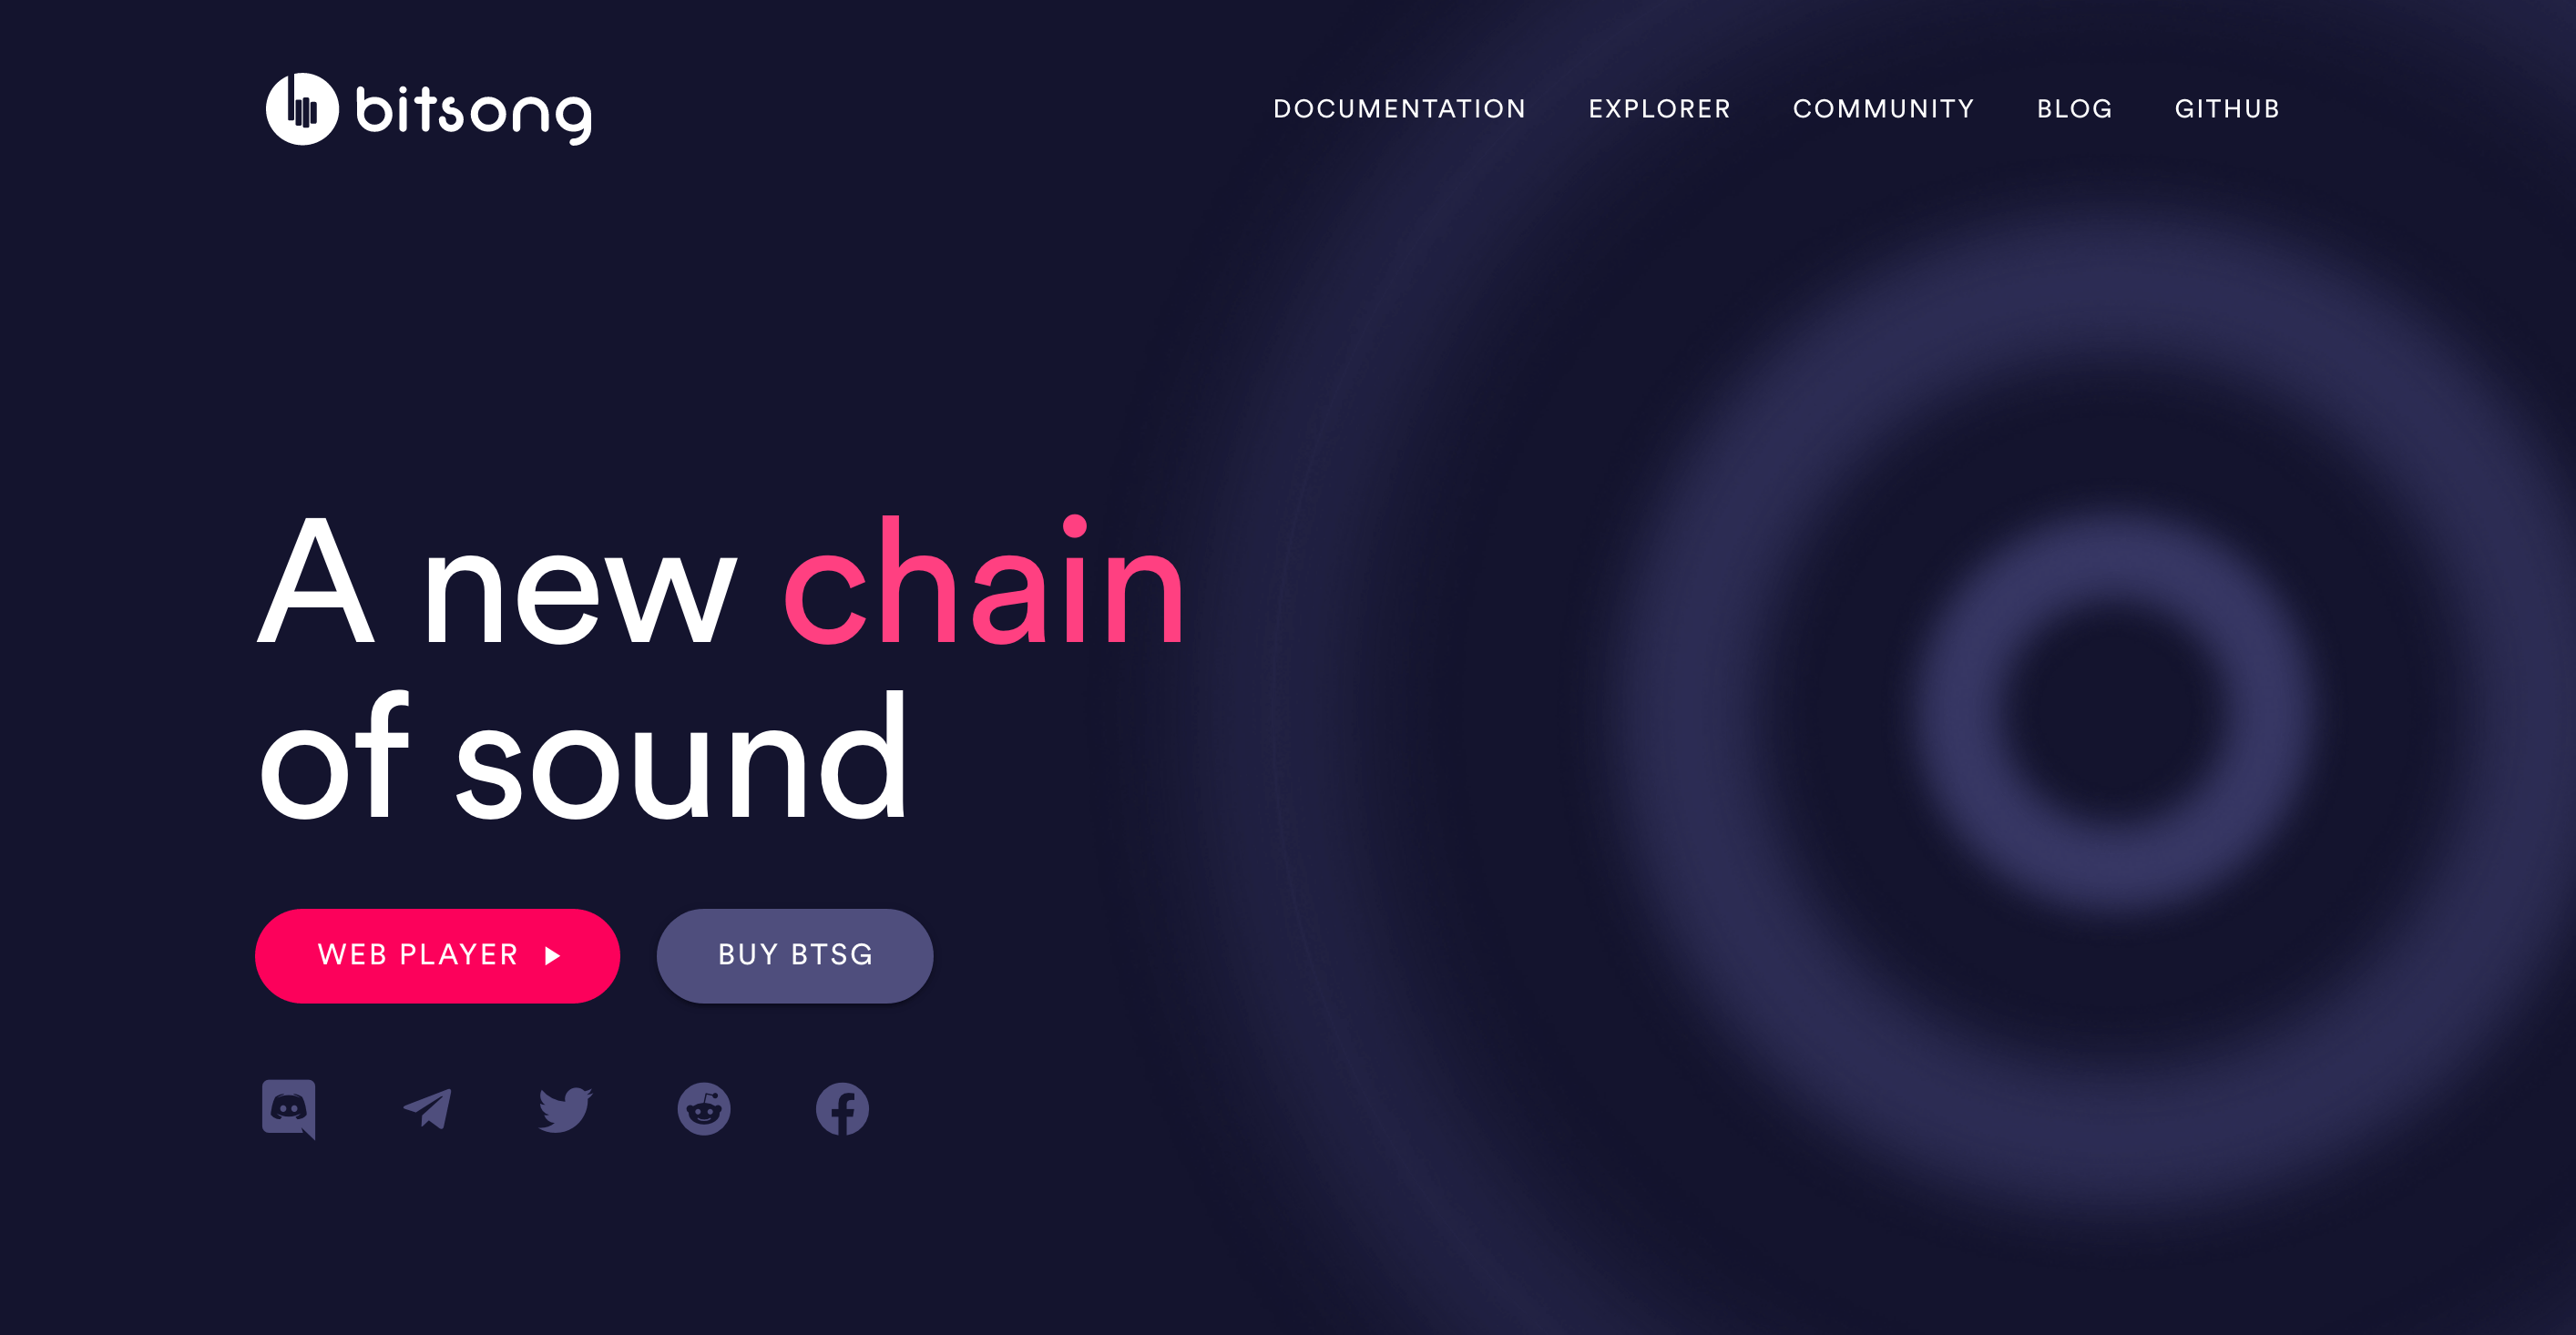 Home page for Bitsong, a blockchain platform for music artists to share their work and get paid directly by fans. Dark purple background with pink text. Header text: A new chain of sound. Web player button. Buy BTSG button. Favicons for discord, telegram, twitter, reddit, and facebook.